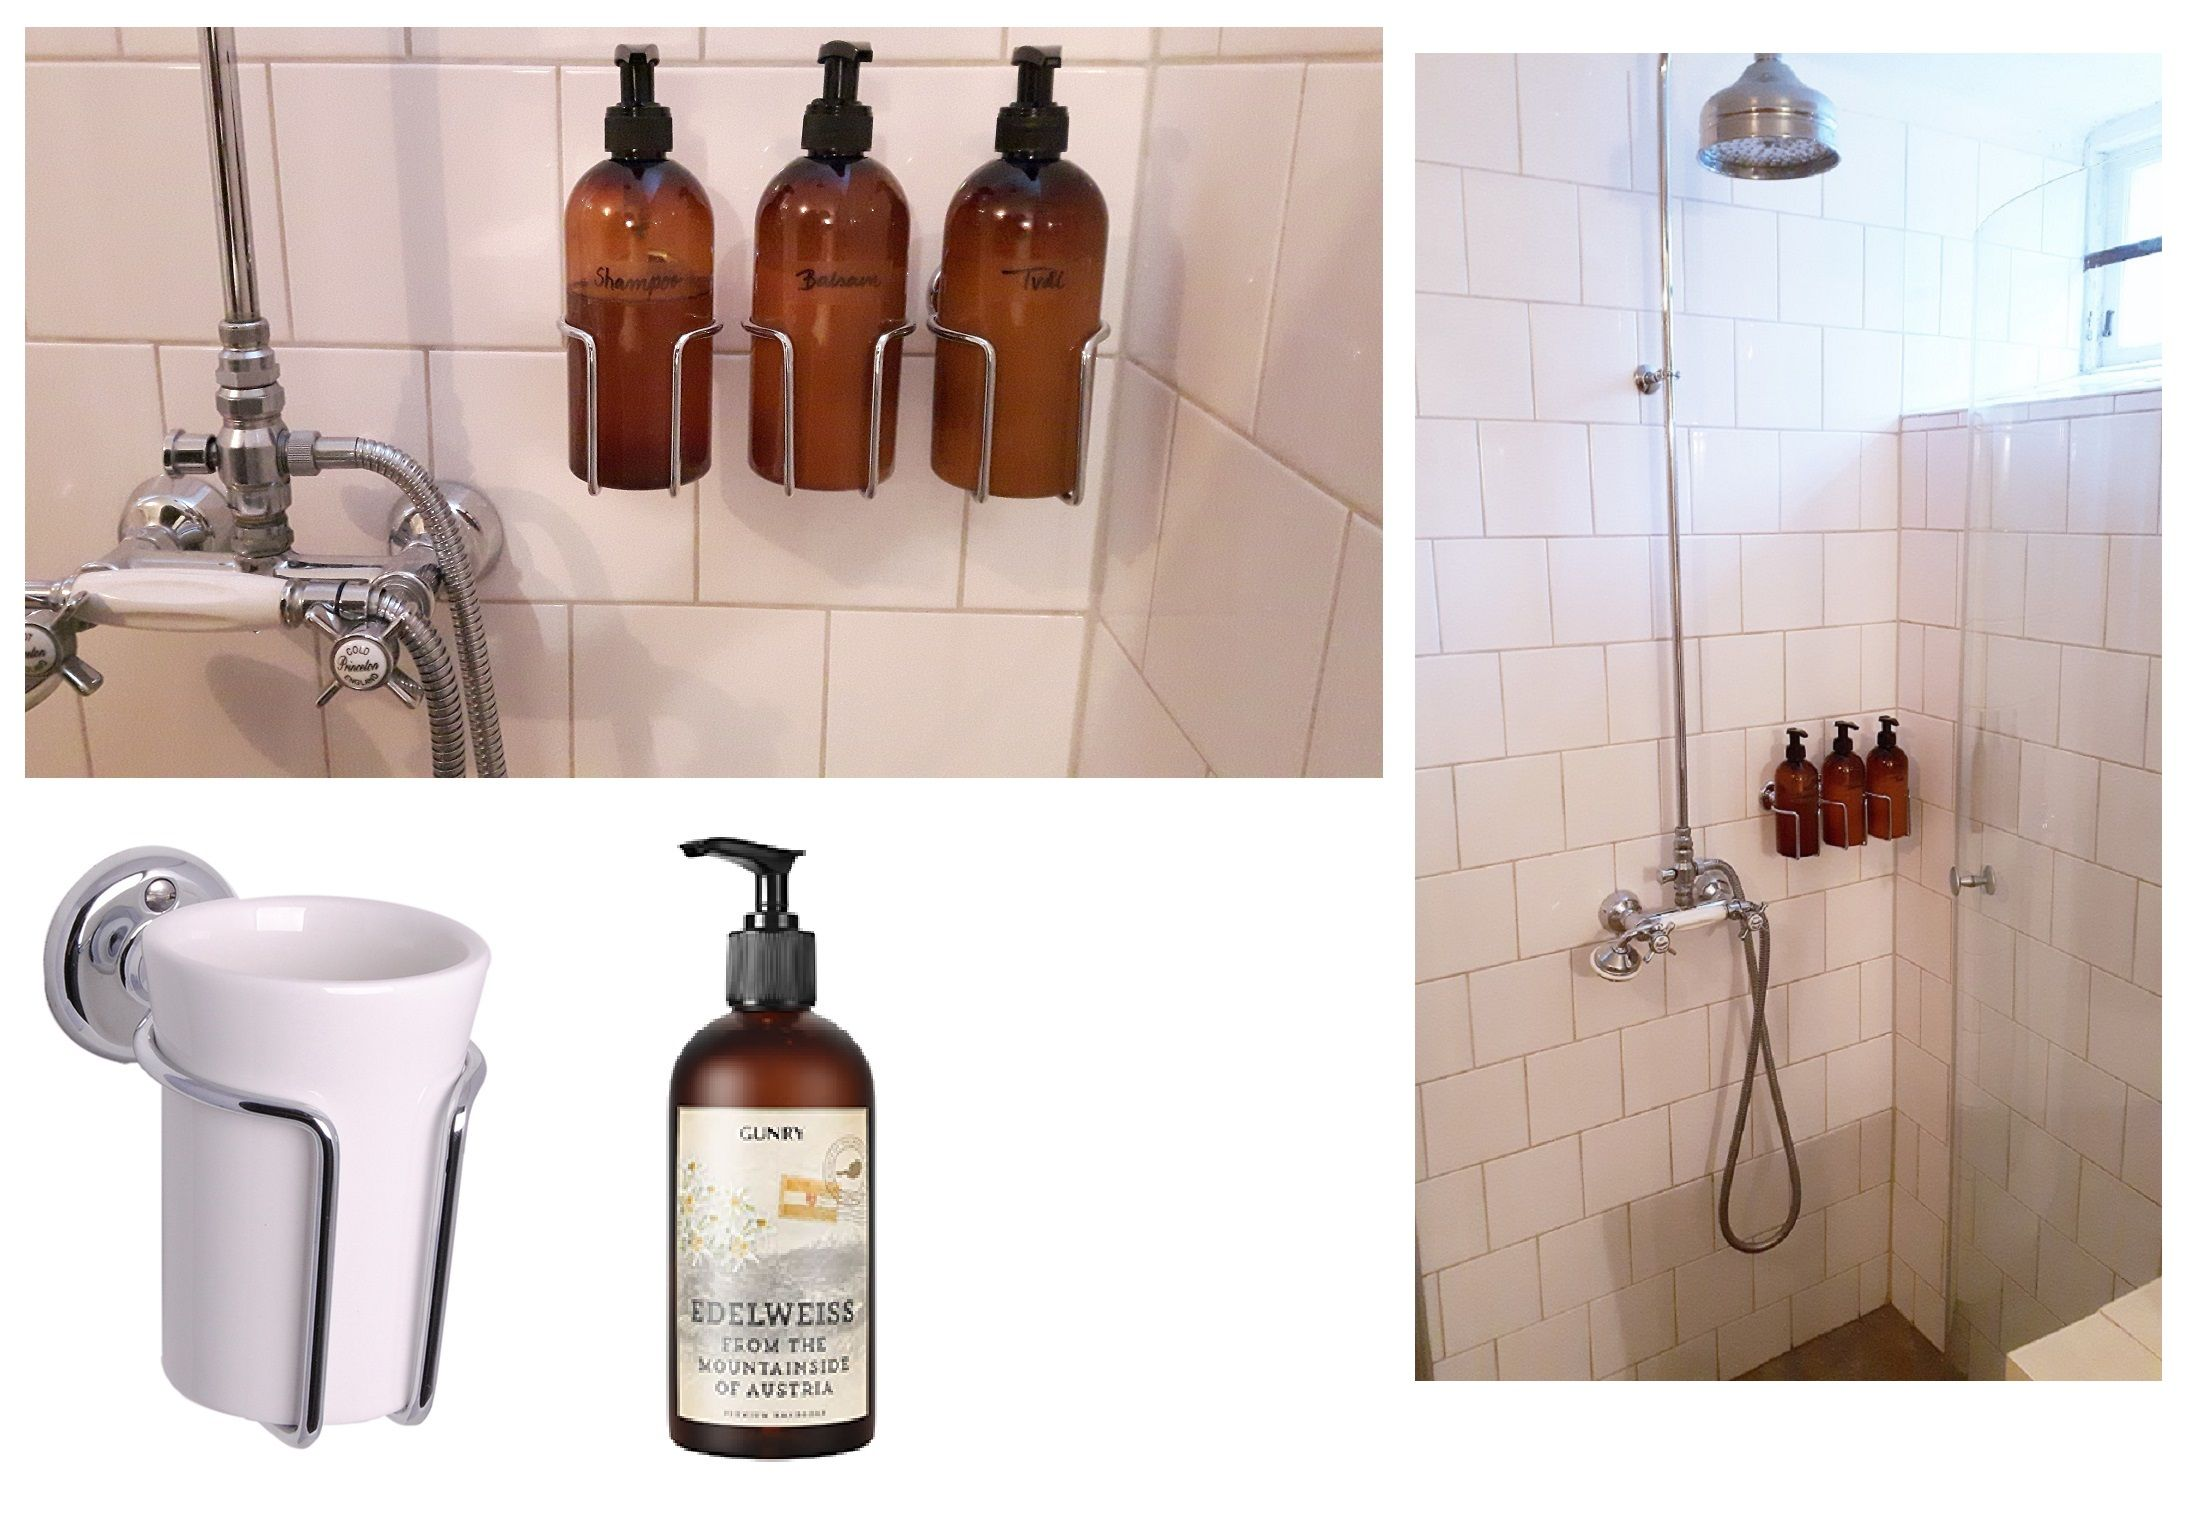 No More Bottles On The Floor In The Shower Wall Mounted Shampoo